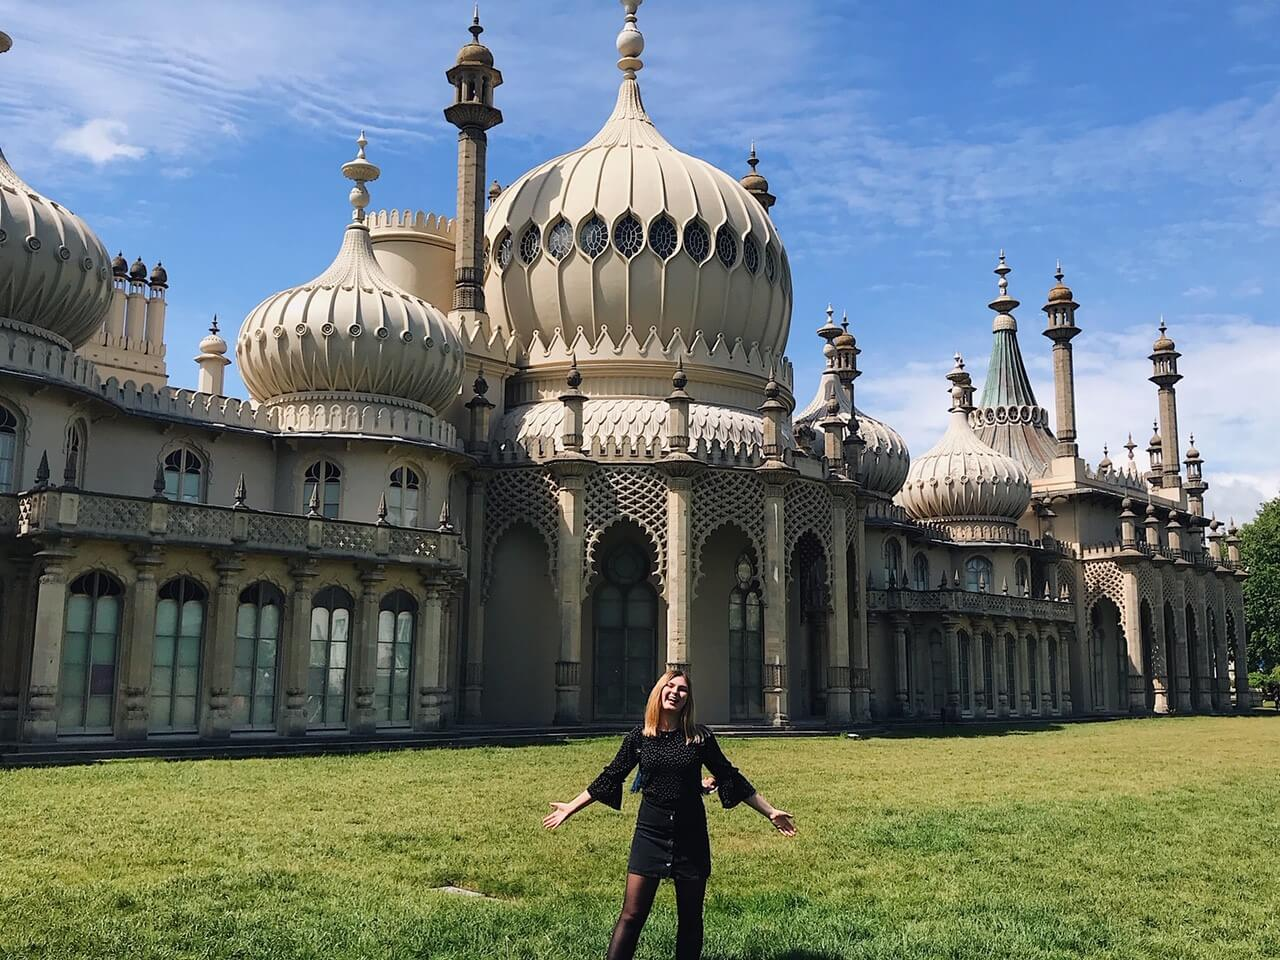 Things to do in Brighton: The Royal Pavilion